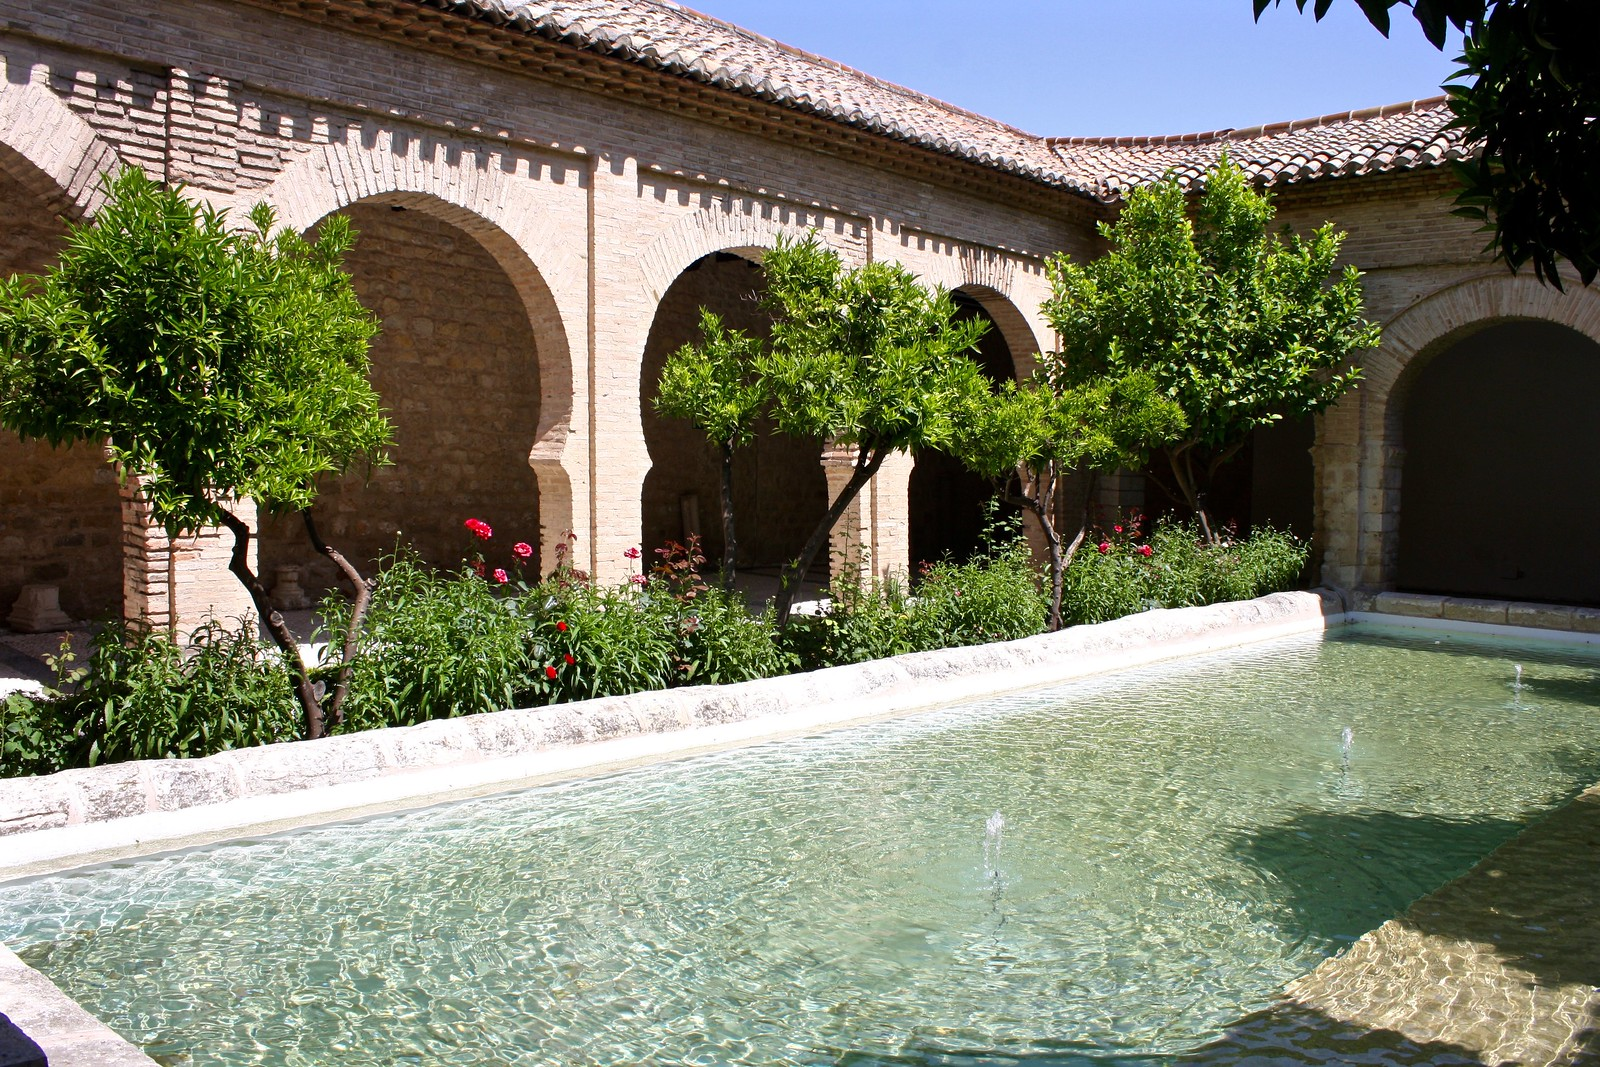 Courtyard with horseshoe arches, Church of the Magdalena, Jaén, Spain